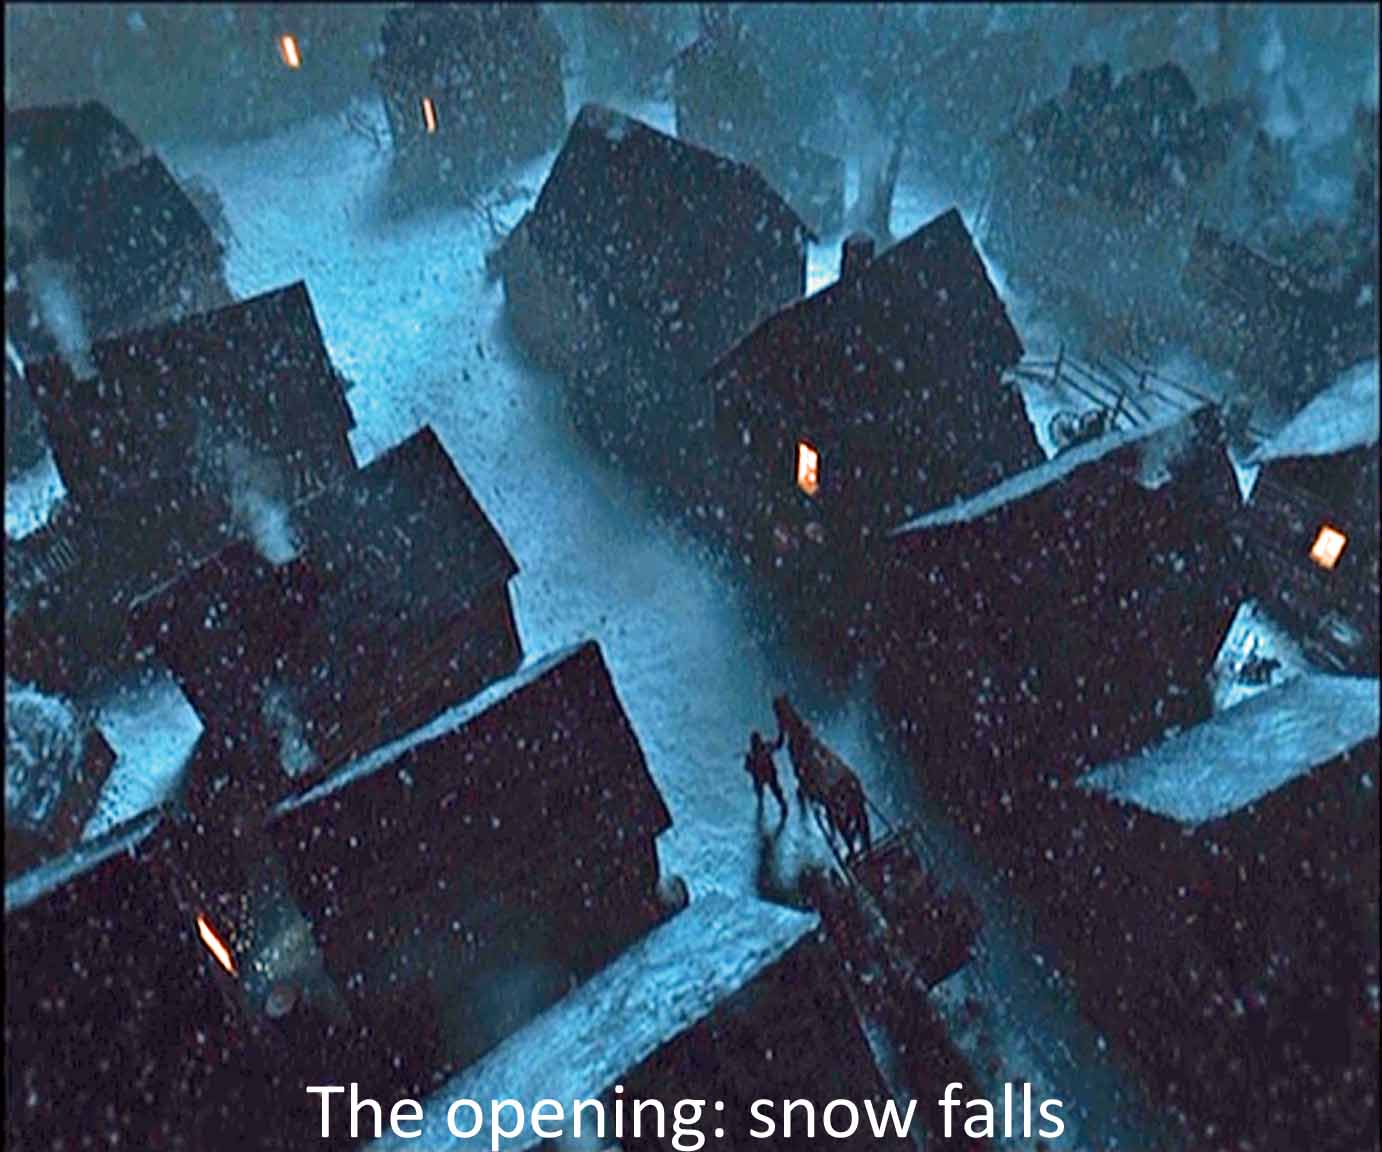 The opening: snow falls